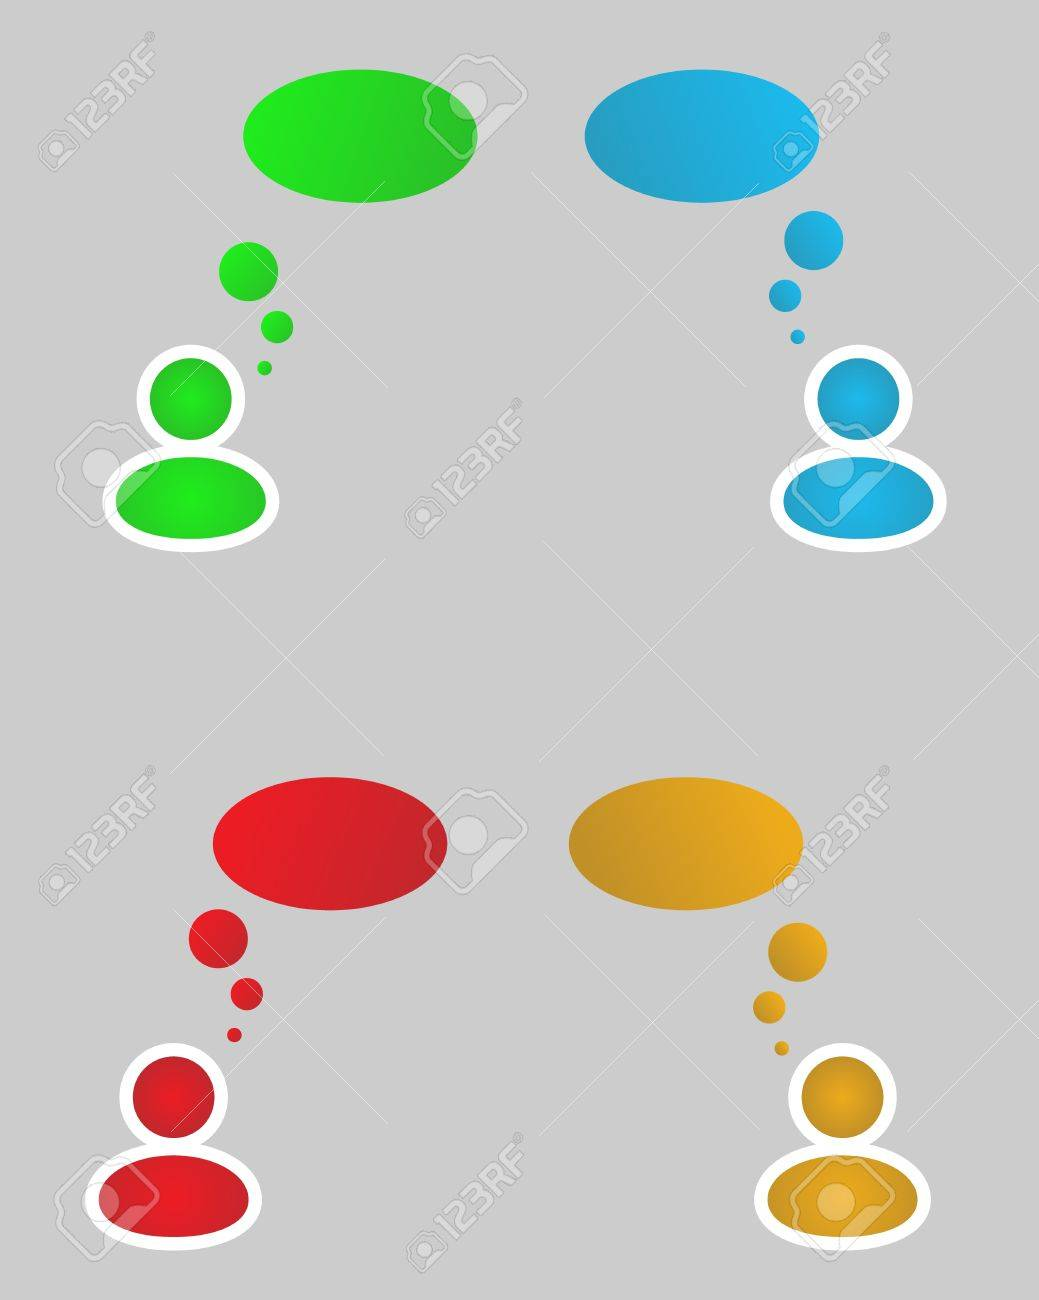 color (green, blue, red, yellow) siluets with thinking bubbles Stock Vector - 17980462